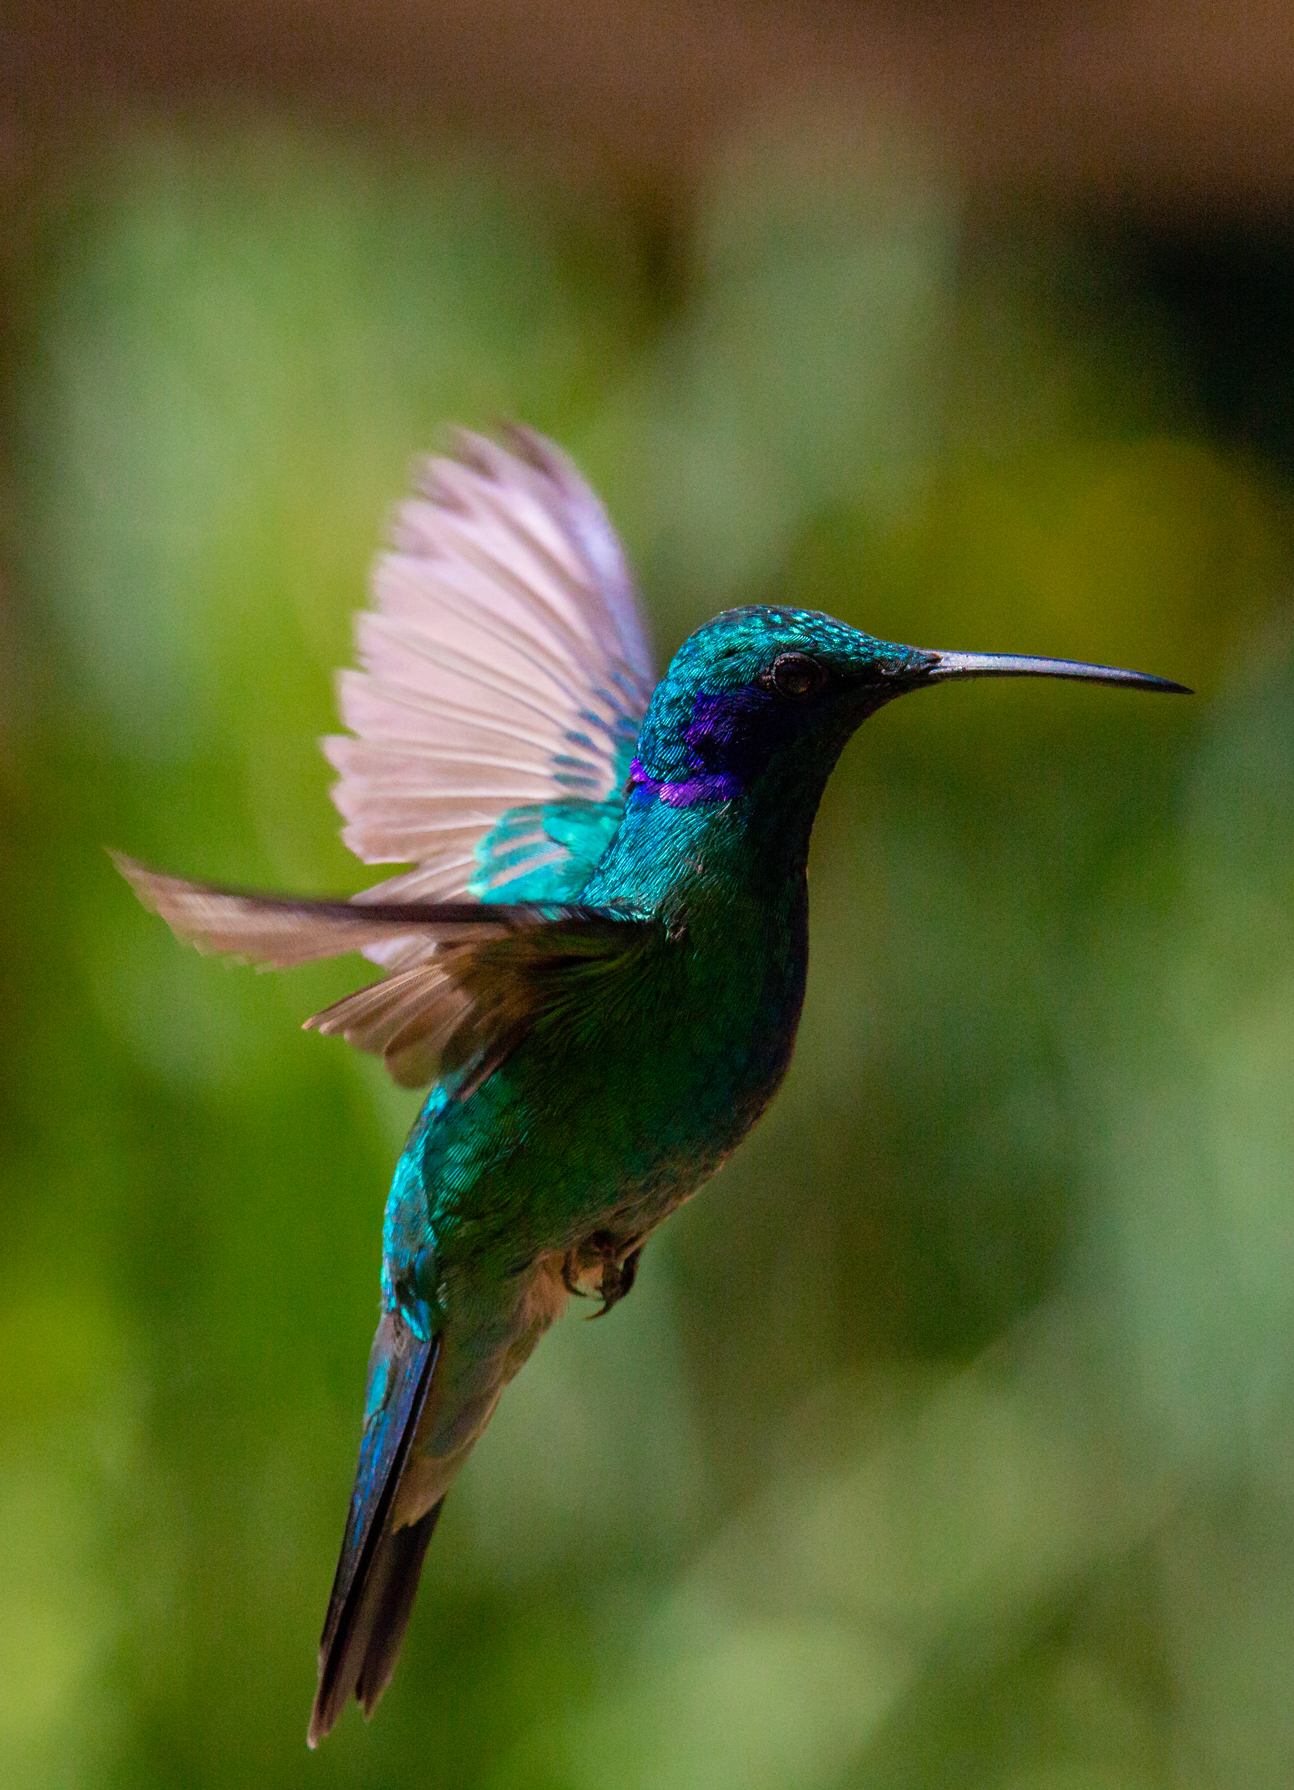 Hummingbird in Flight. Taken in San Gerardo de Dota, Costa Rica. Photo by Ben Blankenship. ©2019